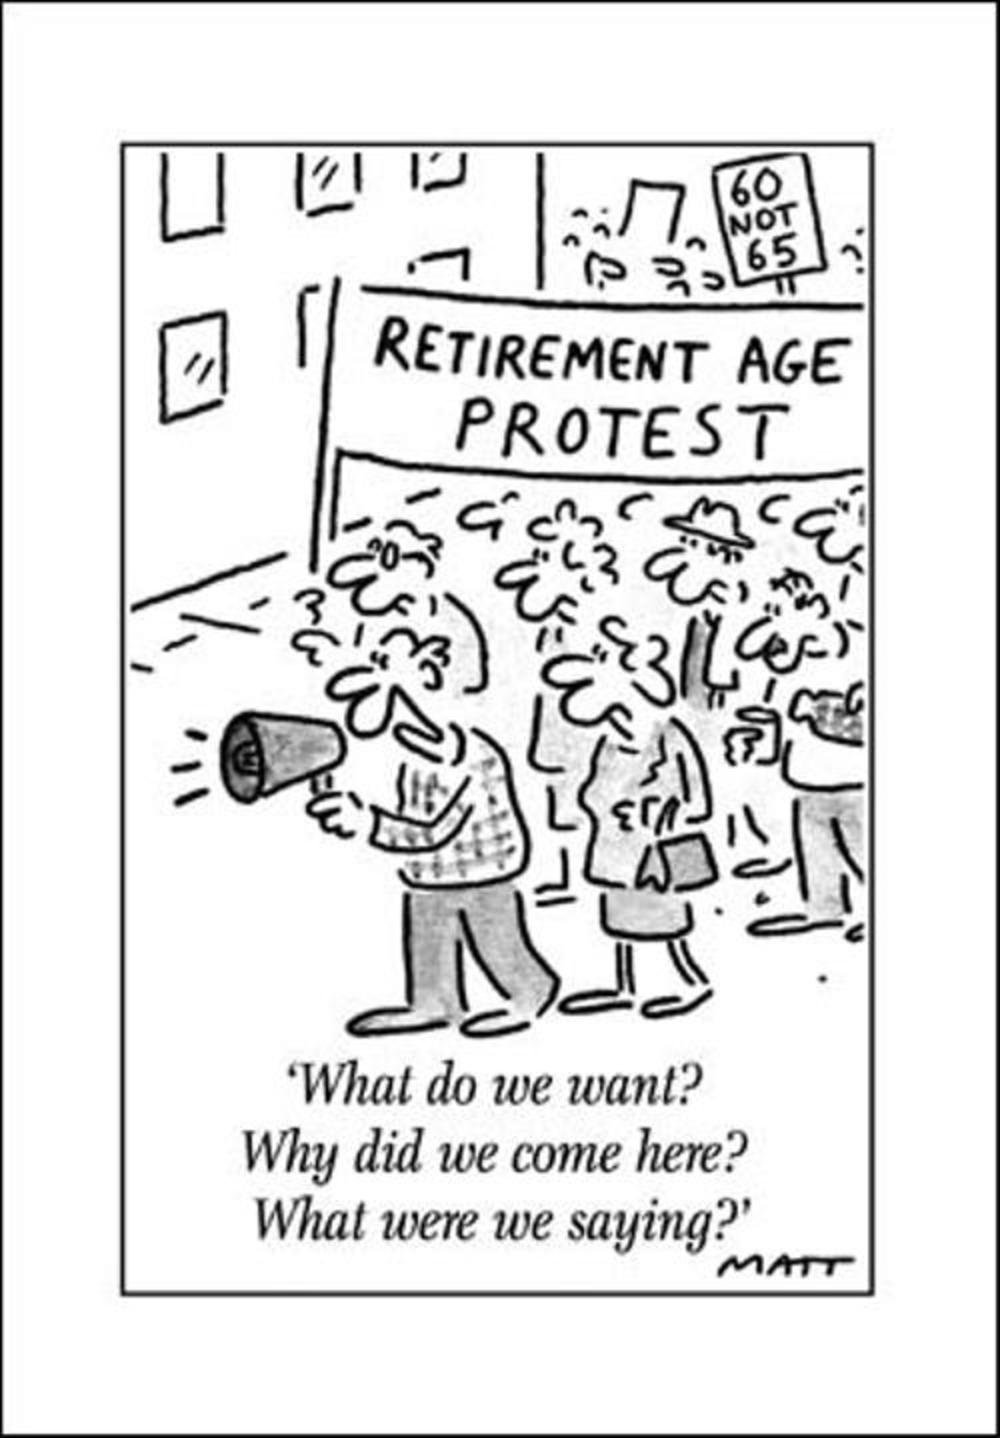 Retirement Age Protest Funny Matt Greeting Card Cards